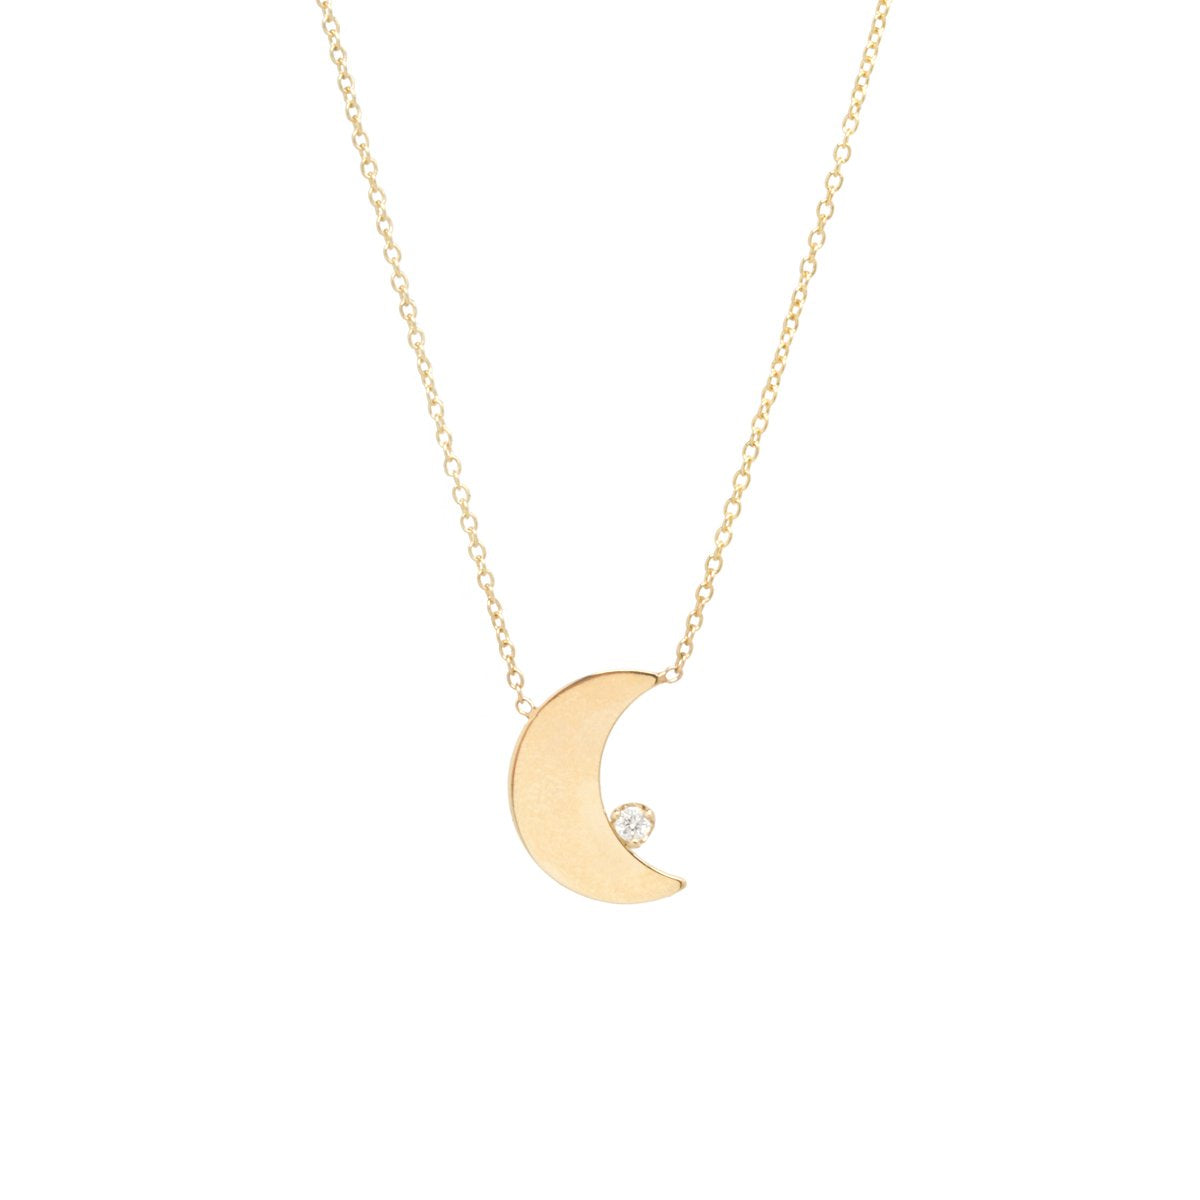 Vertical Crescent Moon & Prong Diamond Necklace | Art + Soul Gallery